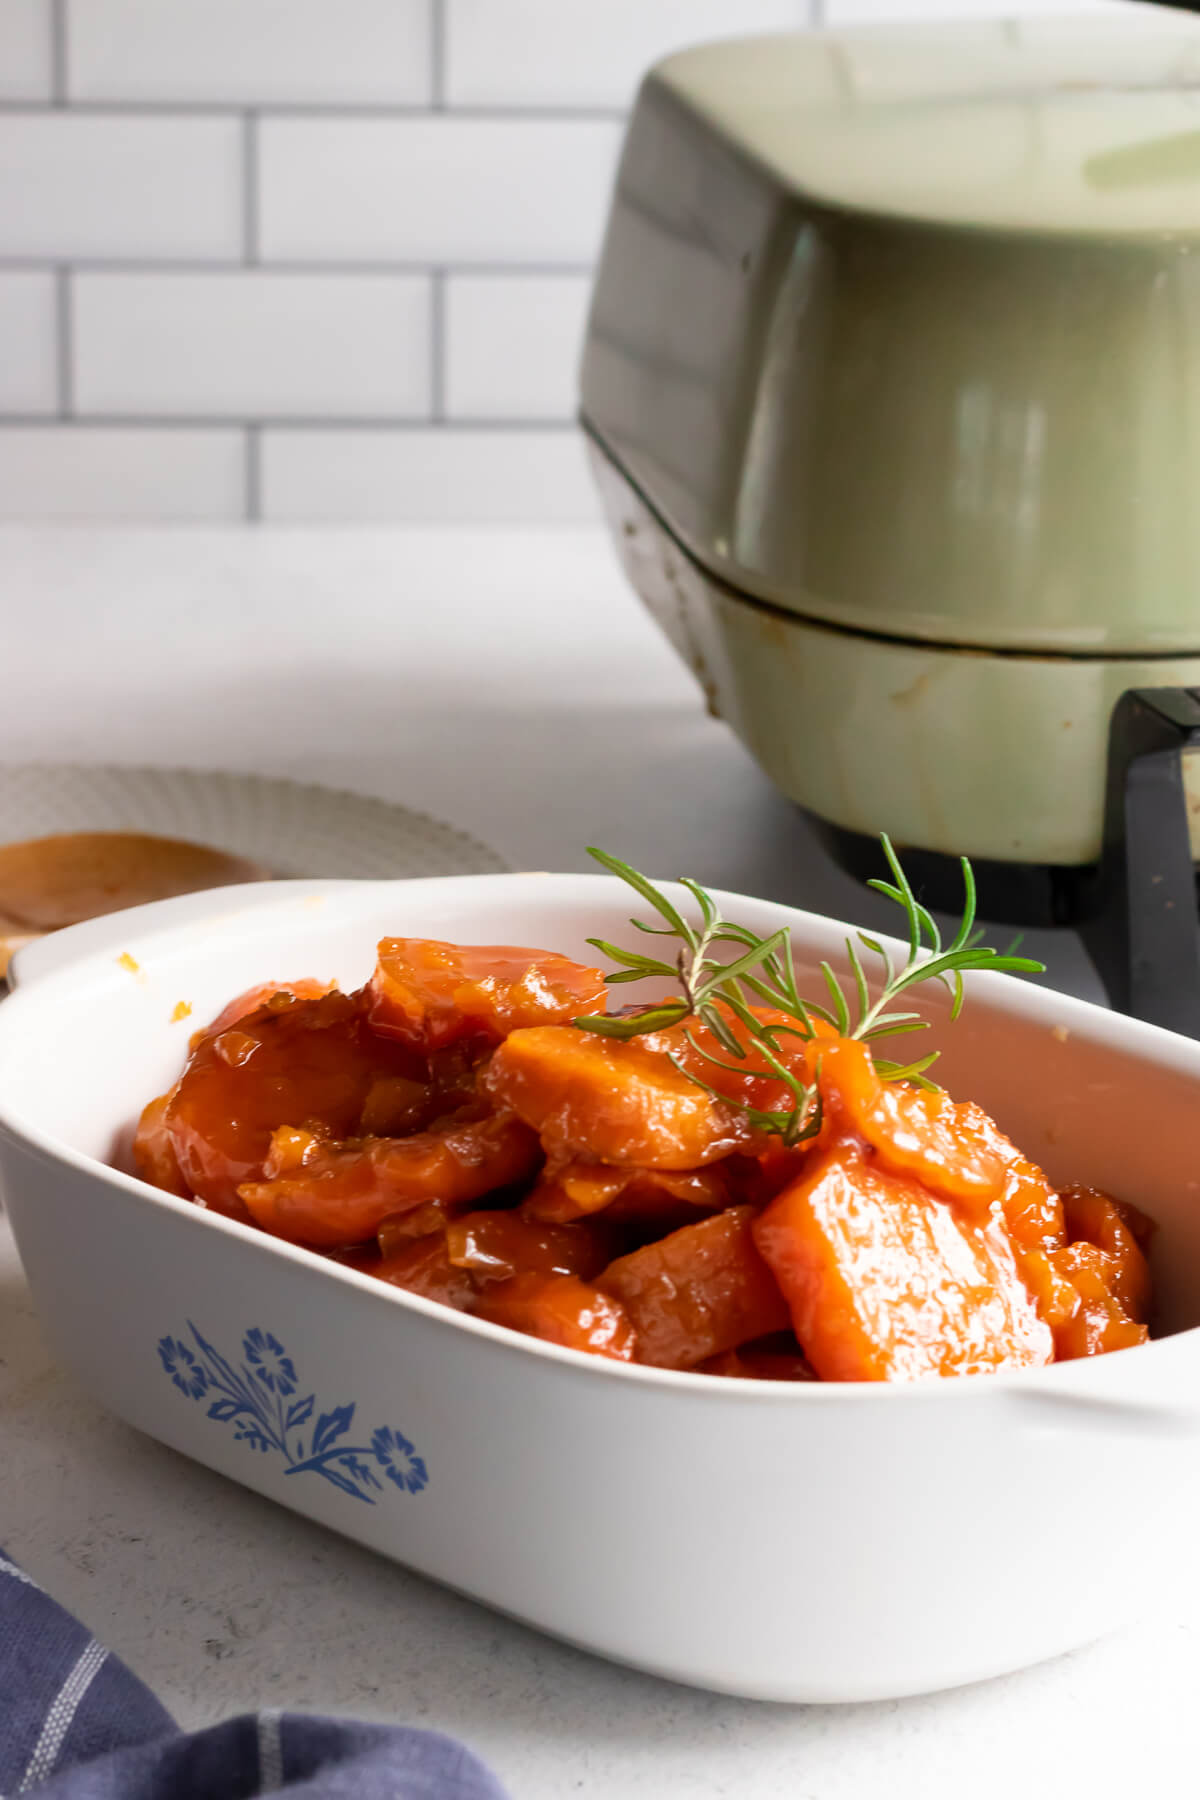 Candied yams in white bowl